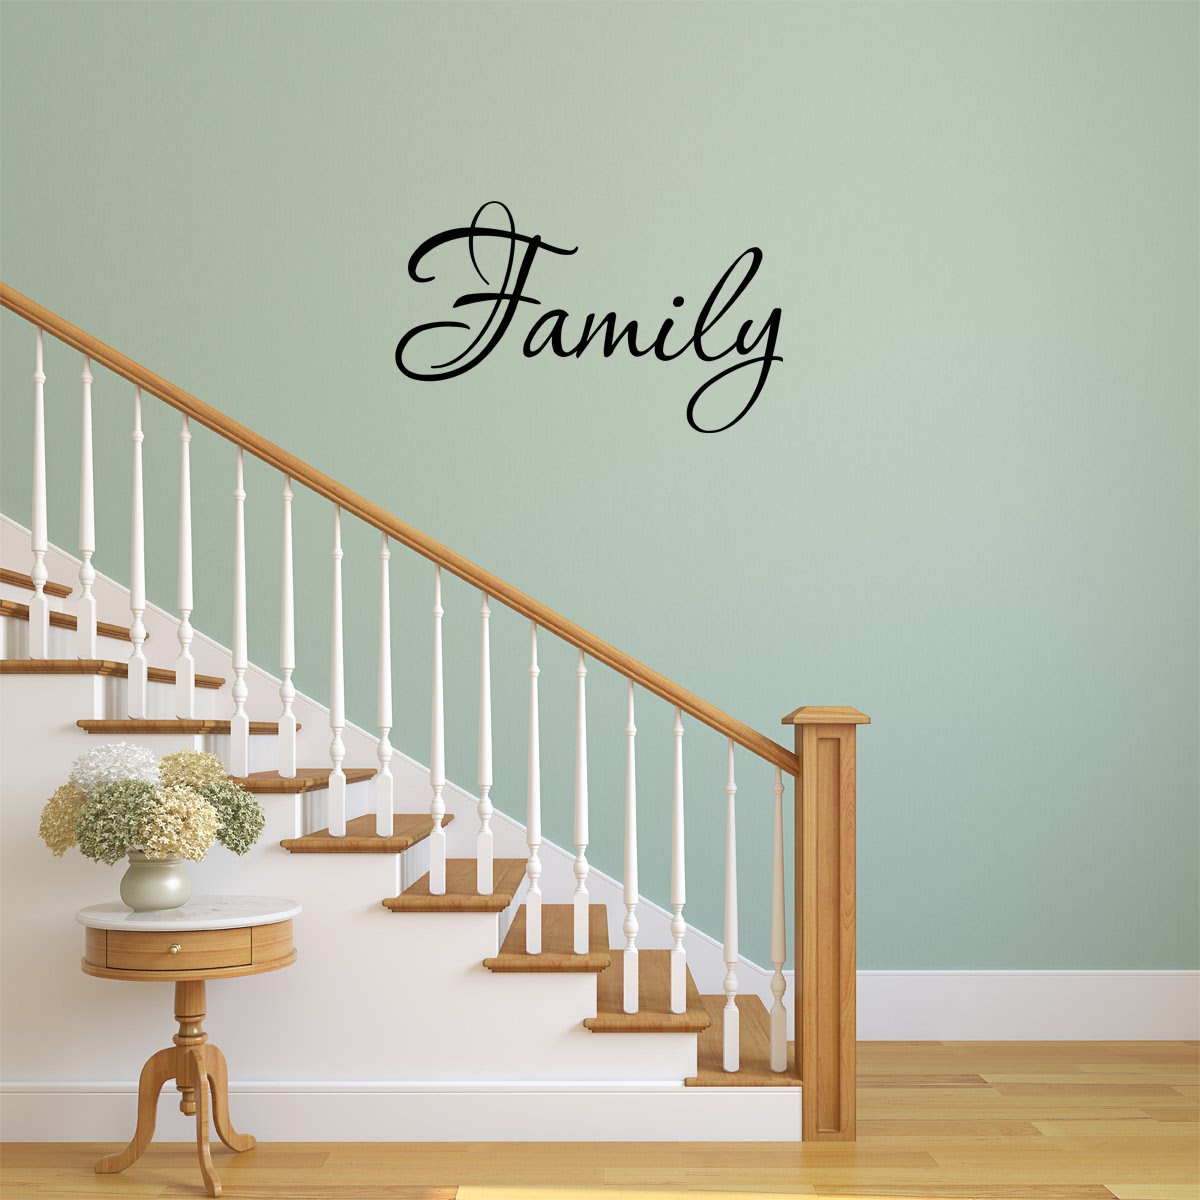 Family Wall Quotes Decals Stickers Home Decor Hanging Living Room